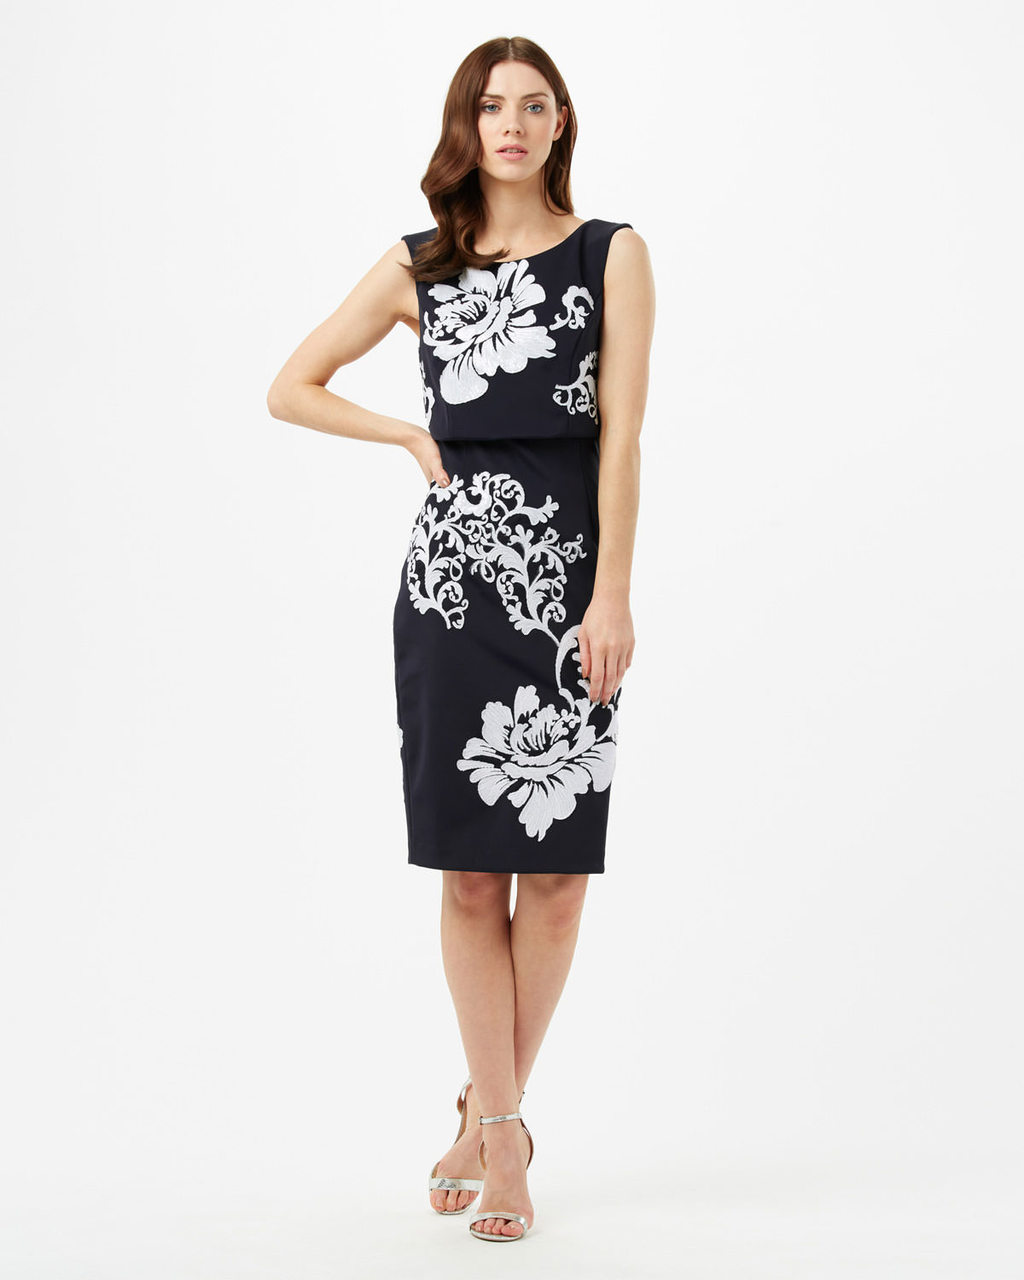 Moira Sequin Flower Dress - style: shift; fit: tailored/fitted; sleeve style: sleeveless; secondary colour: white; predominant colour: black; occasions: evening; length: on the knee; fibres: polyester/polyamide - stretch; neckline: crew; sleeve length: sleeveless; texture group: ornate wovens; pattern type: fabric; pattern: florals; embellishment: sequins; multicoloured: multicoloured; season: s/s 2016; wardrobe: event